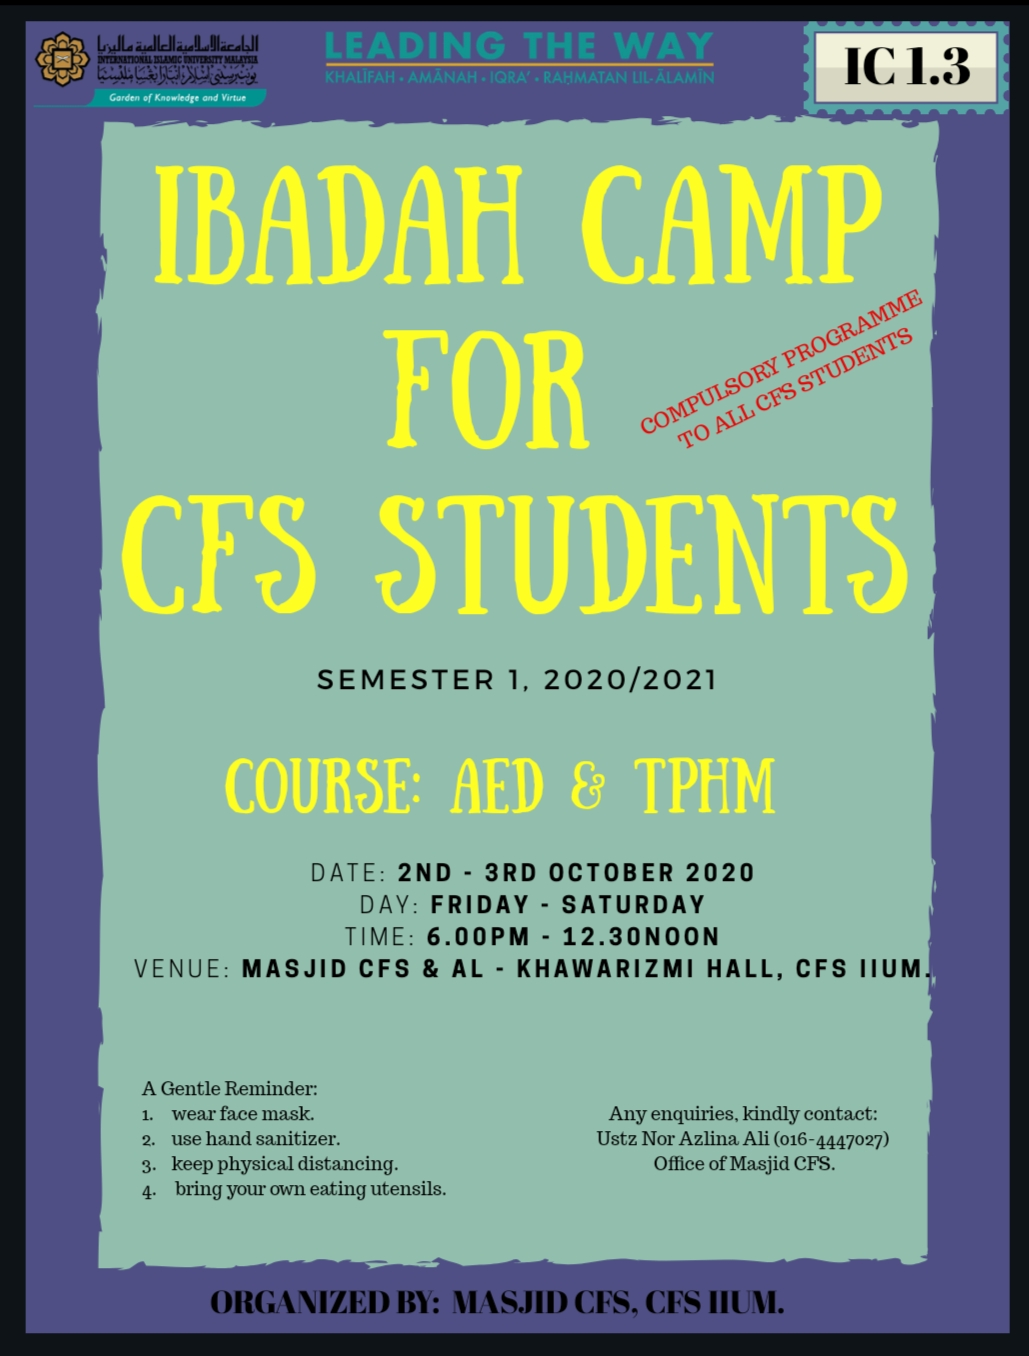 IBADAH CAMP FOR CFS STUDENT